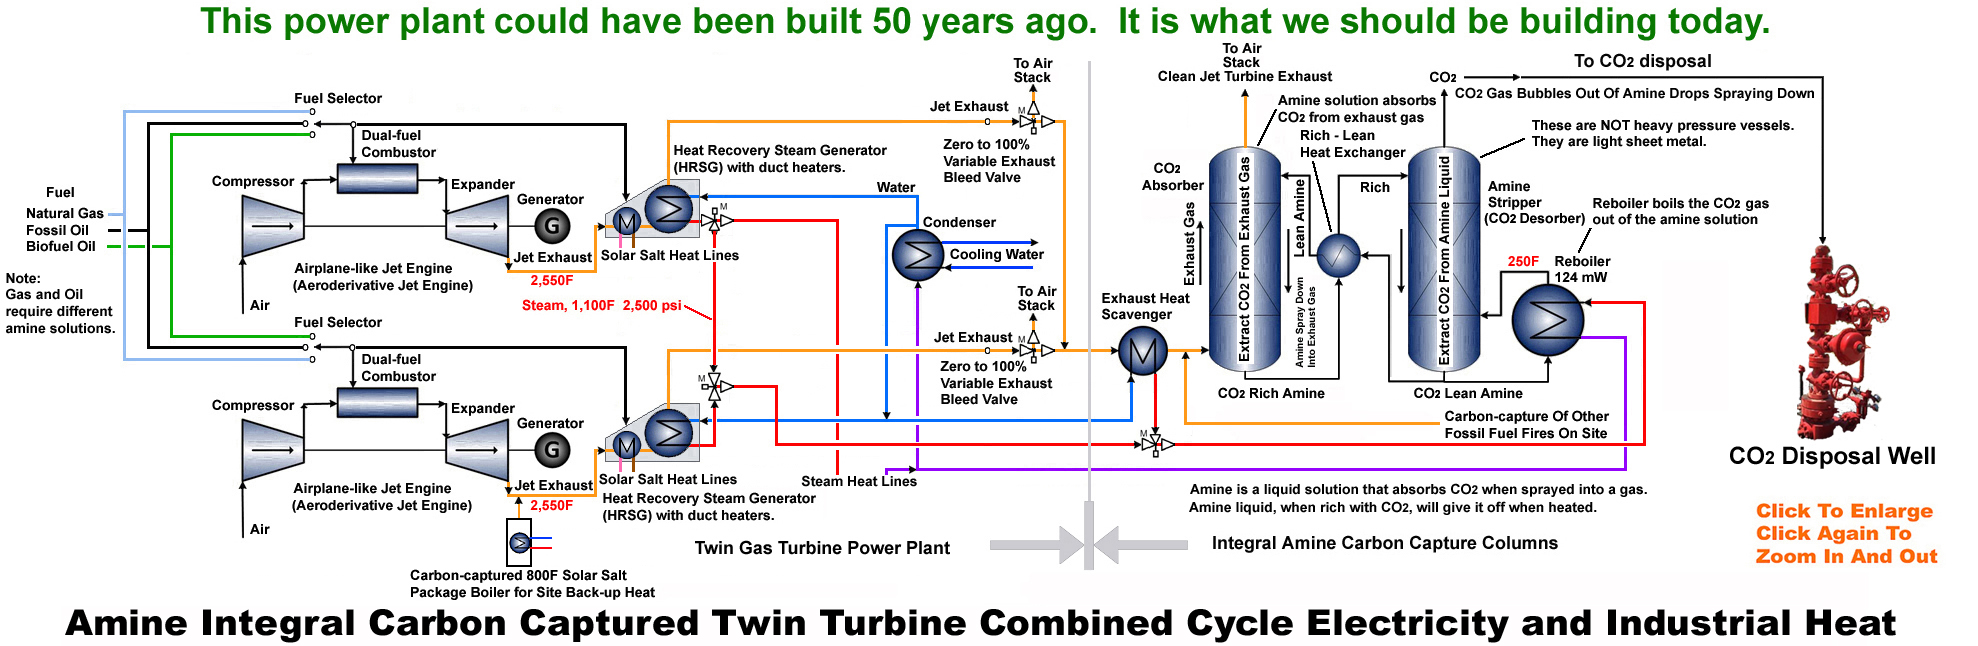 To Stop Climate Change Diesel Power Plant Flow Diagram Co2 Disposal Capacities For Michigan Counties Right Integral Amine Carbon Captured Natural Gas Or Oil Clean Energy Parks